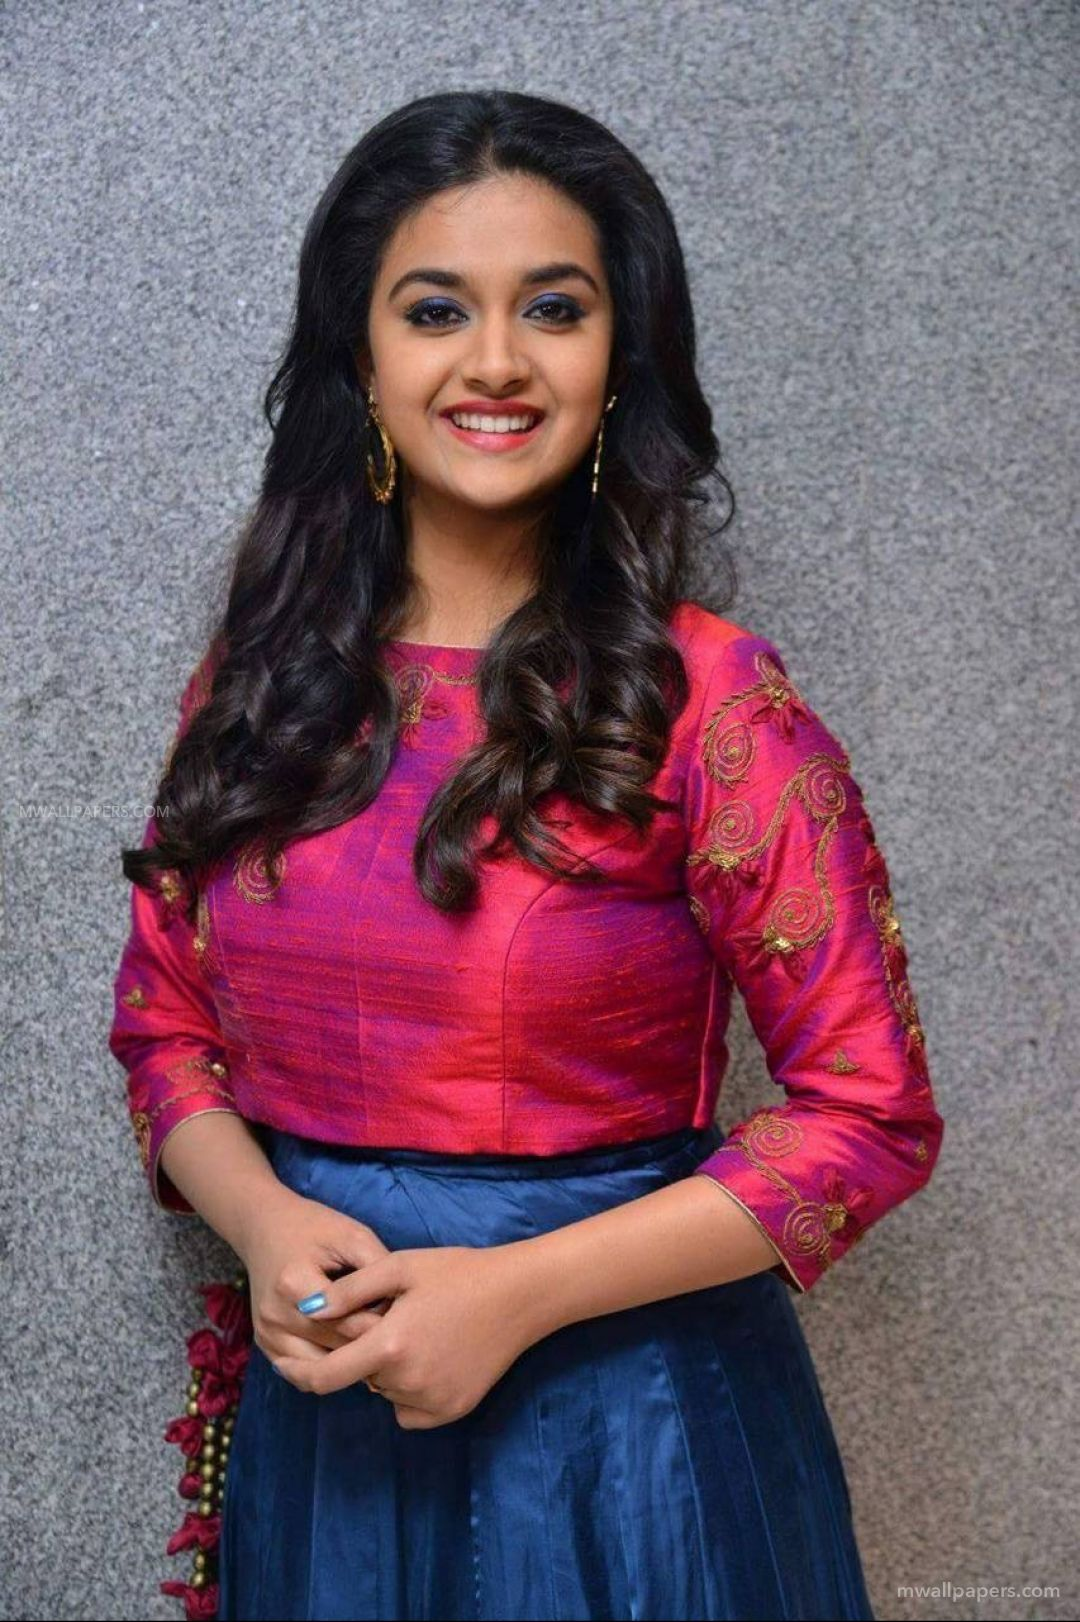 Keerthy Suresh HD Wallpapers (Desktop Background / Android / iPhone) (1080p, 4k) (58009) - Keerthy Suresh